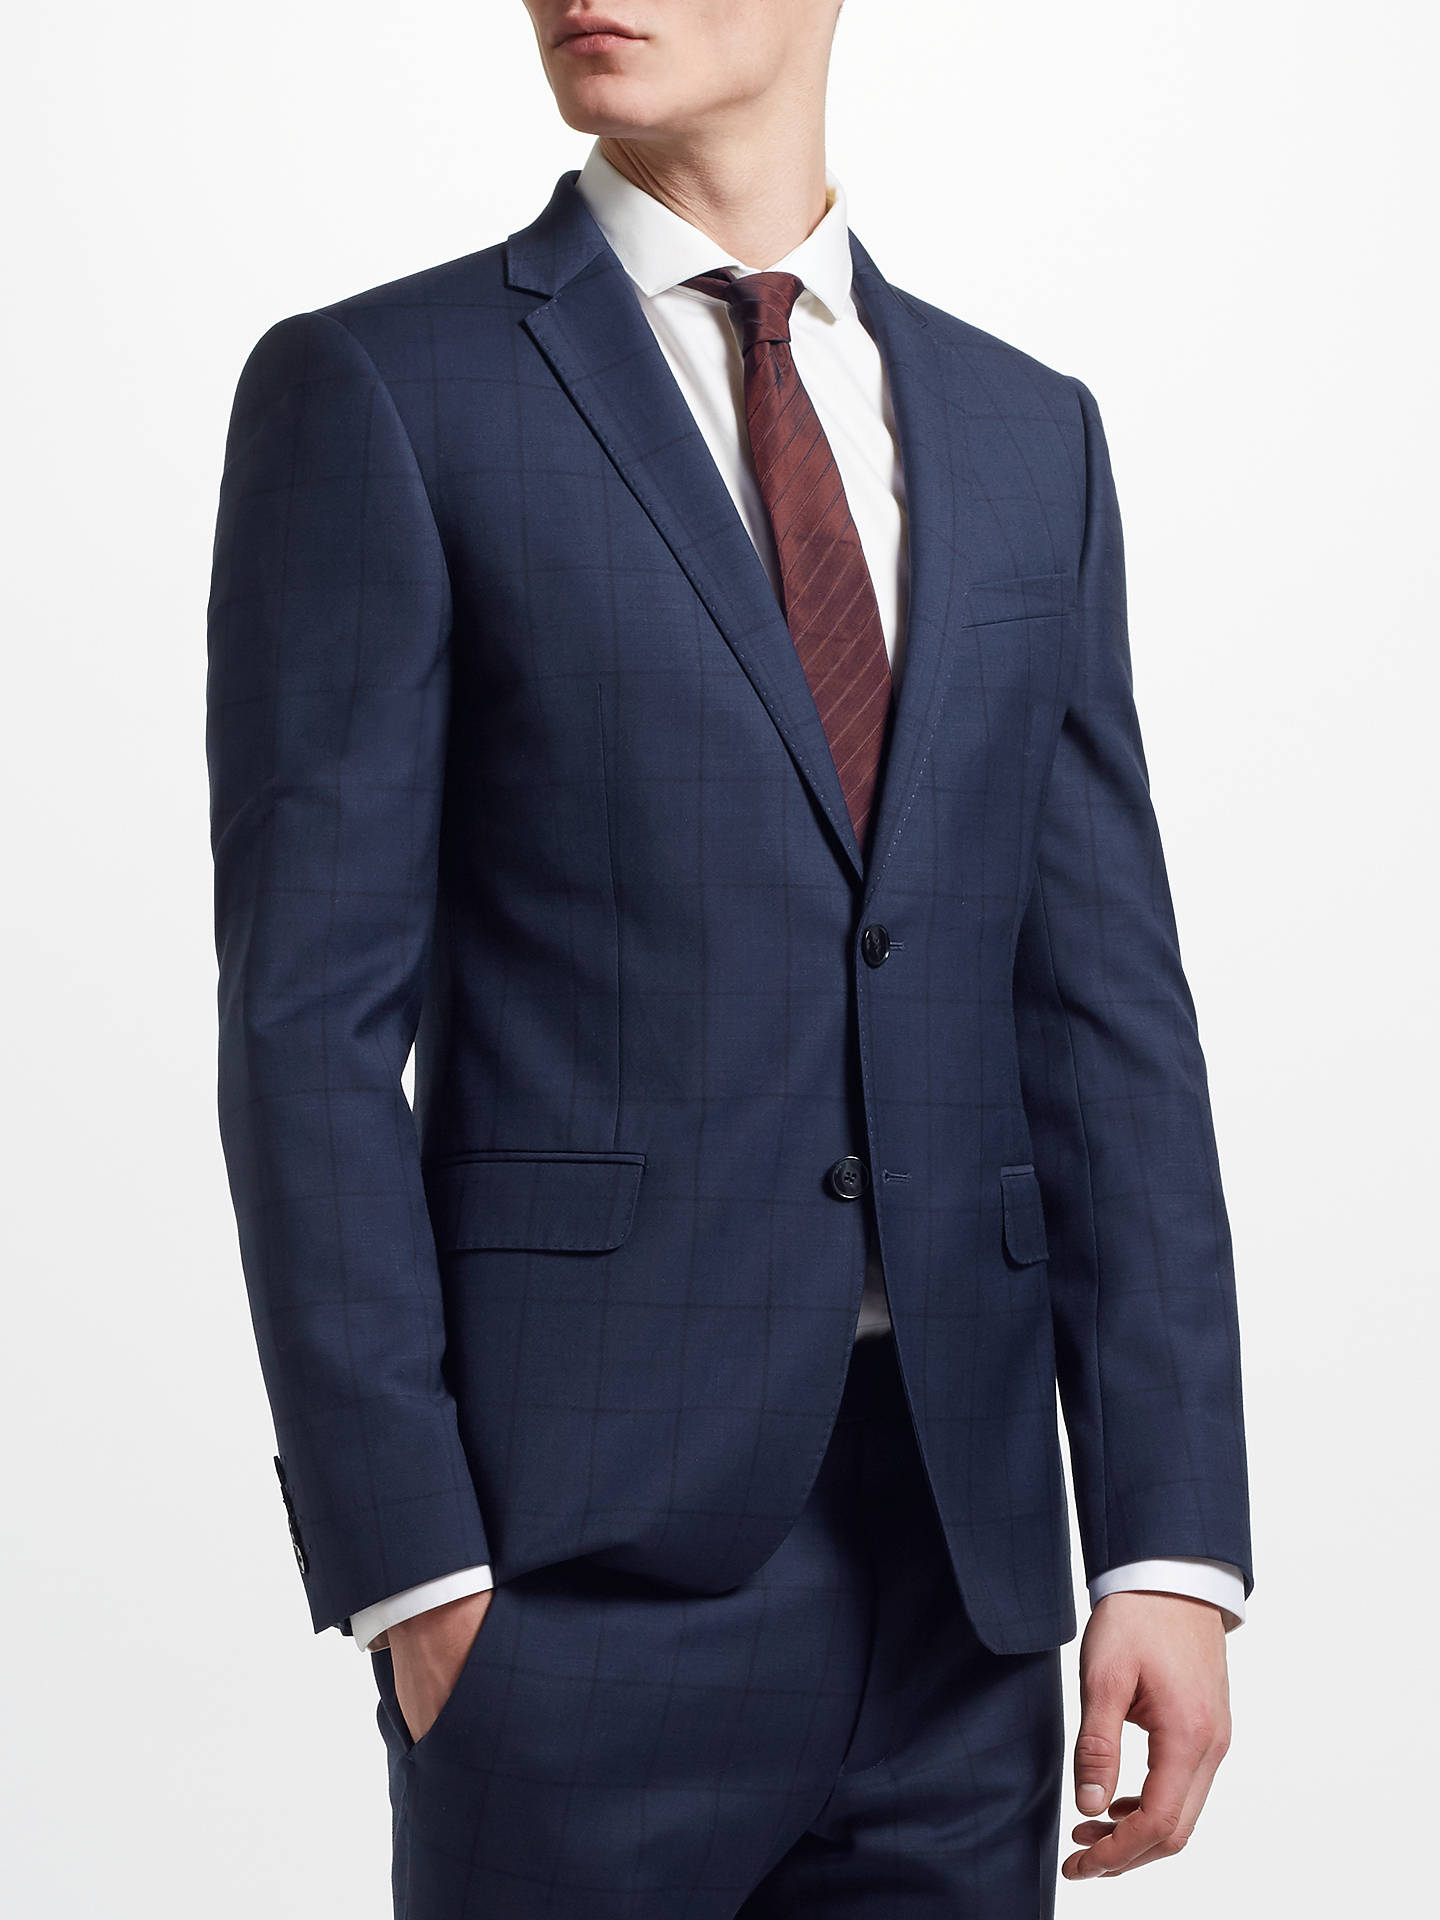 6419a84767dbf Buy Kin Windowpane Check Slim Fit Suit Jacket, Navy, 38L Online at  johnlewis.